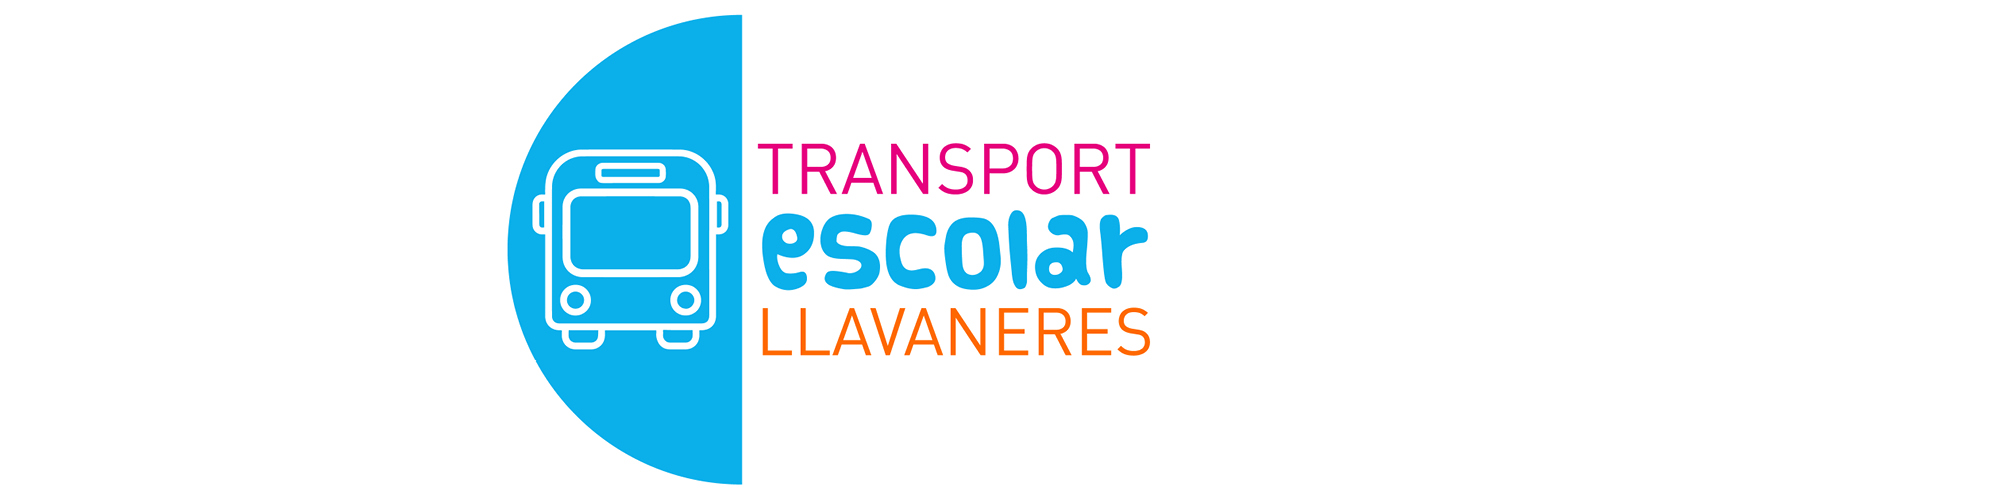 Transport Escolar 2018 baner